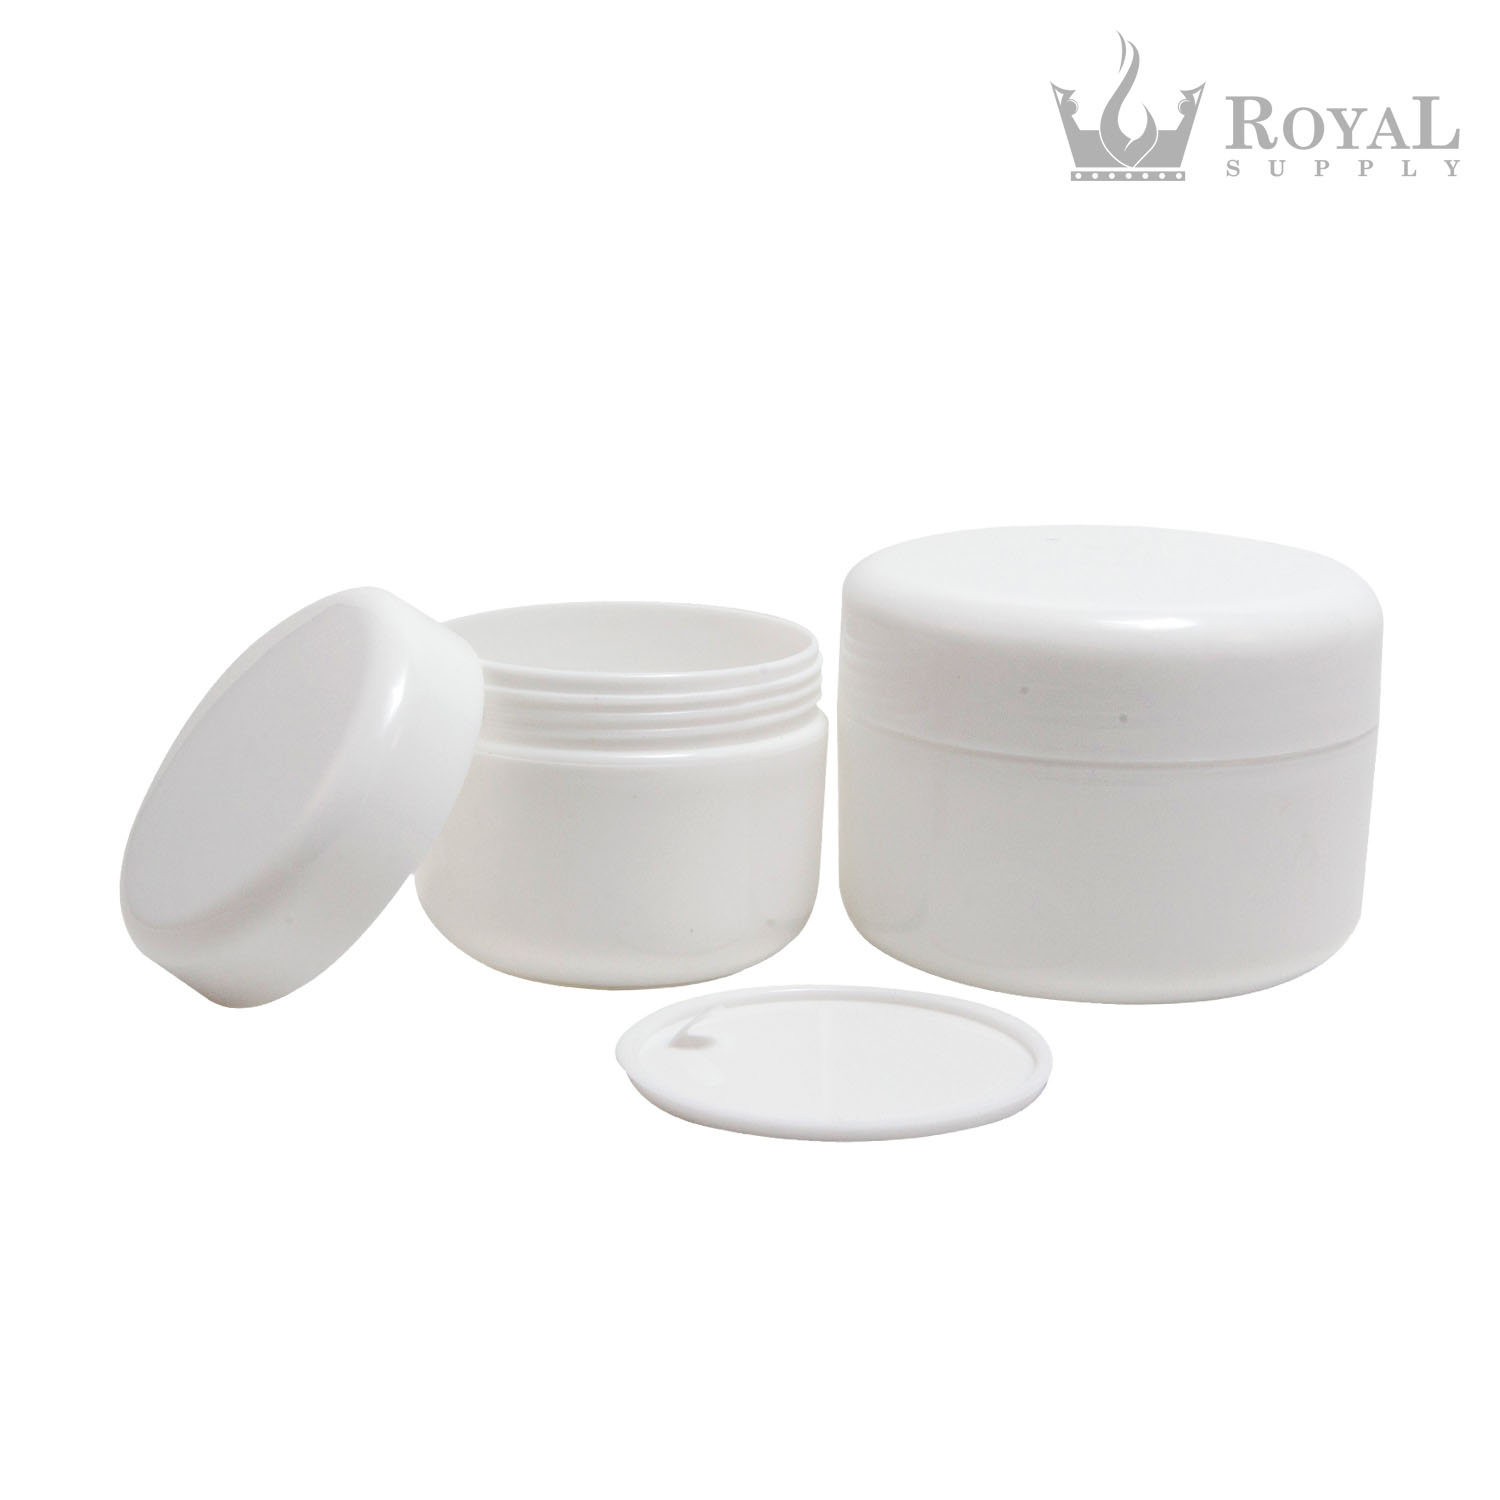 2oz Cosmetic Jars with Inner Liner and Dome Lids